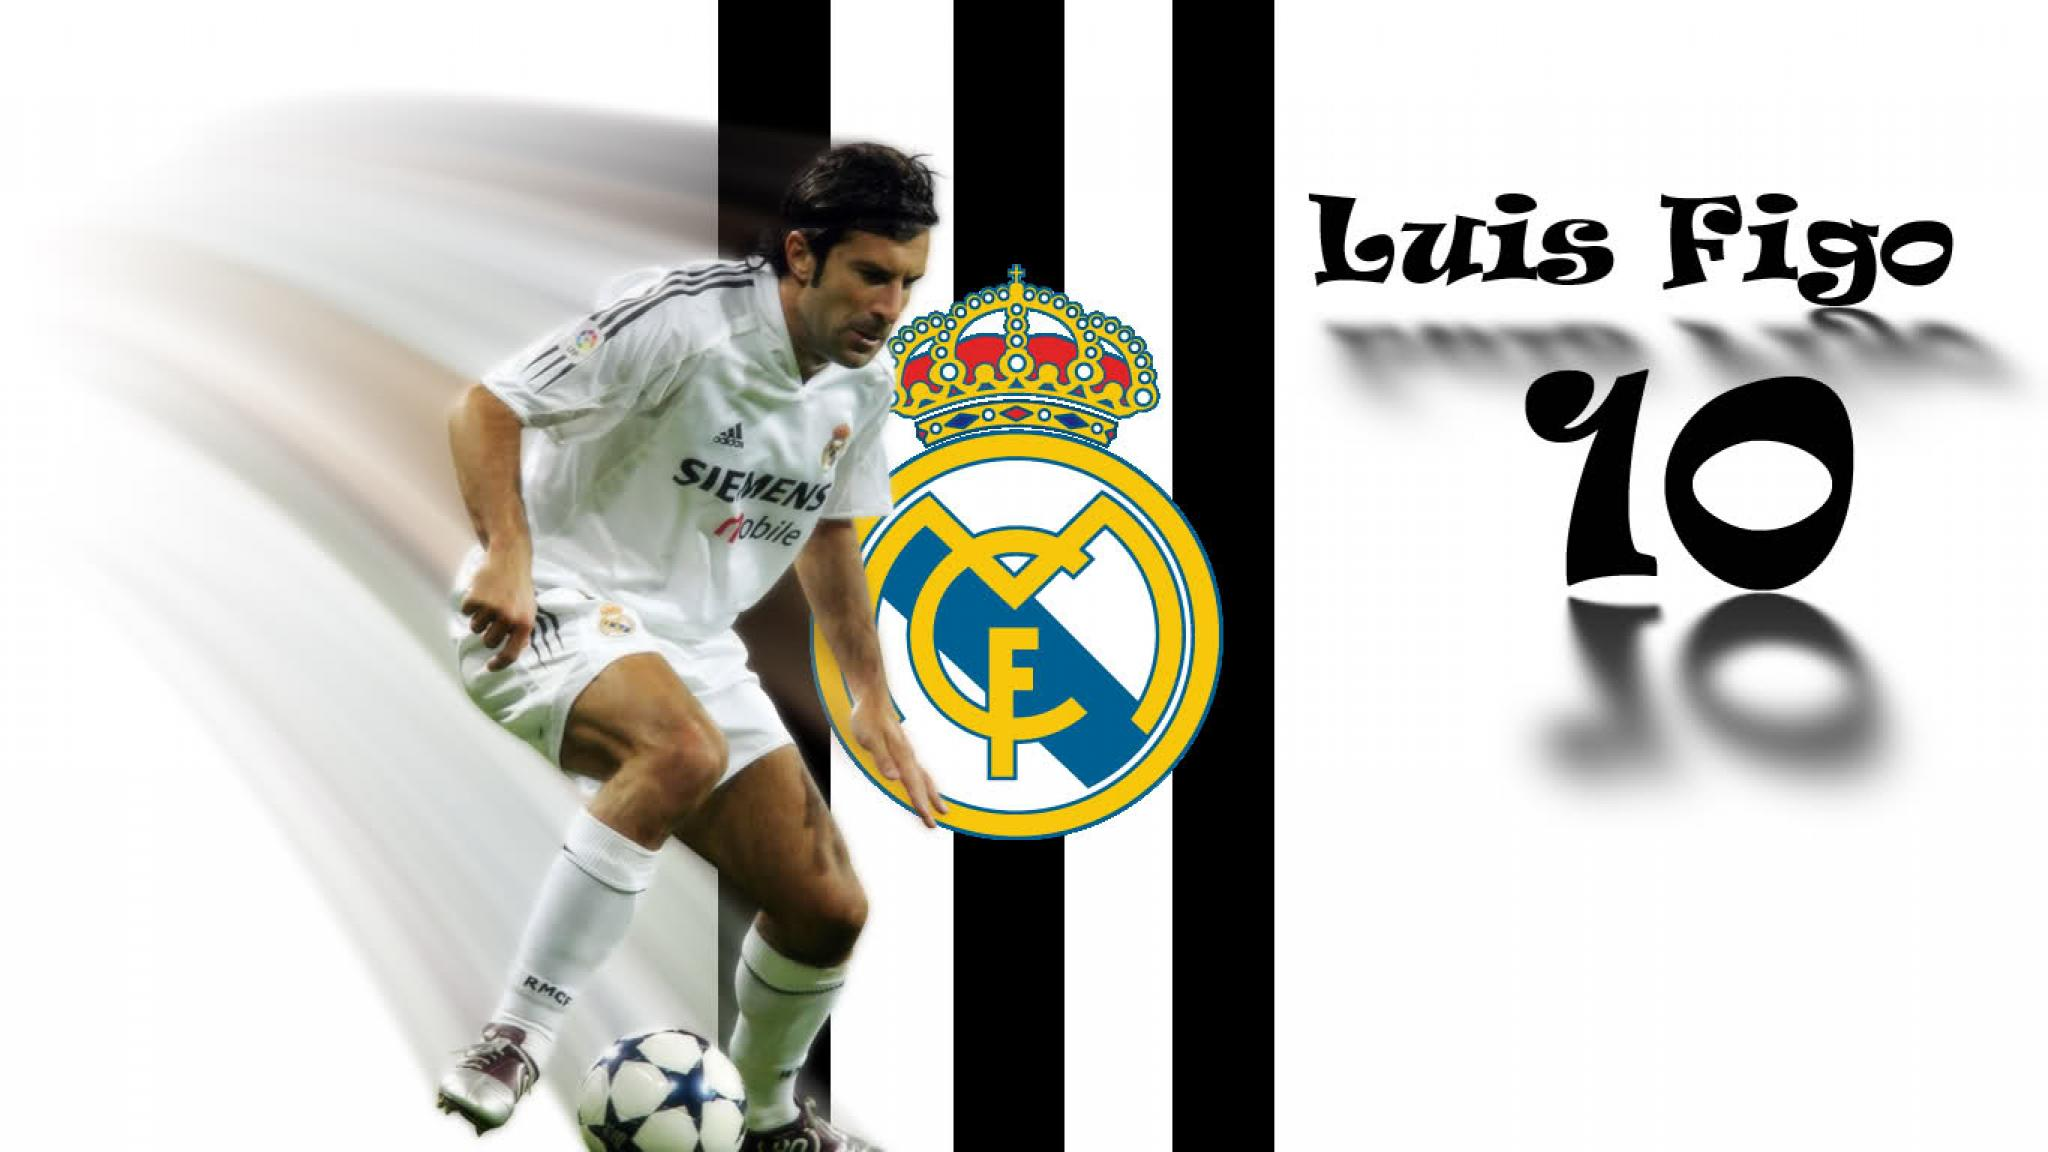 Luis Figo Wallpapers 1366x768 px 96ZDB62 WallpapersExpertcom 2048x1152